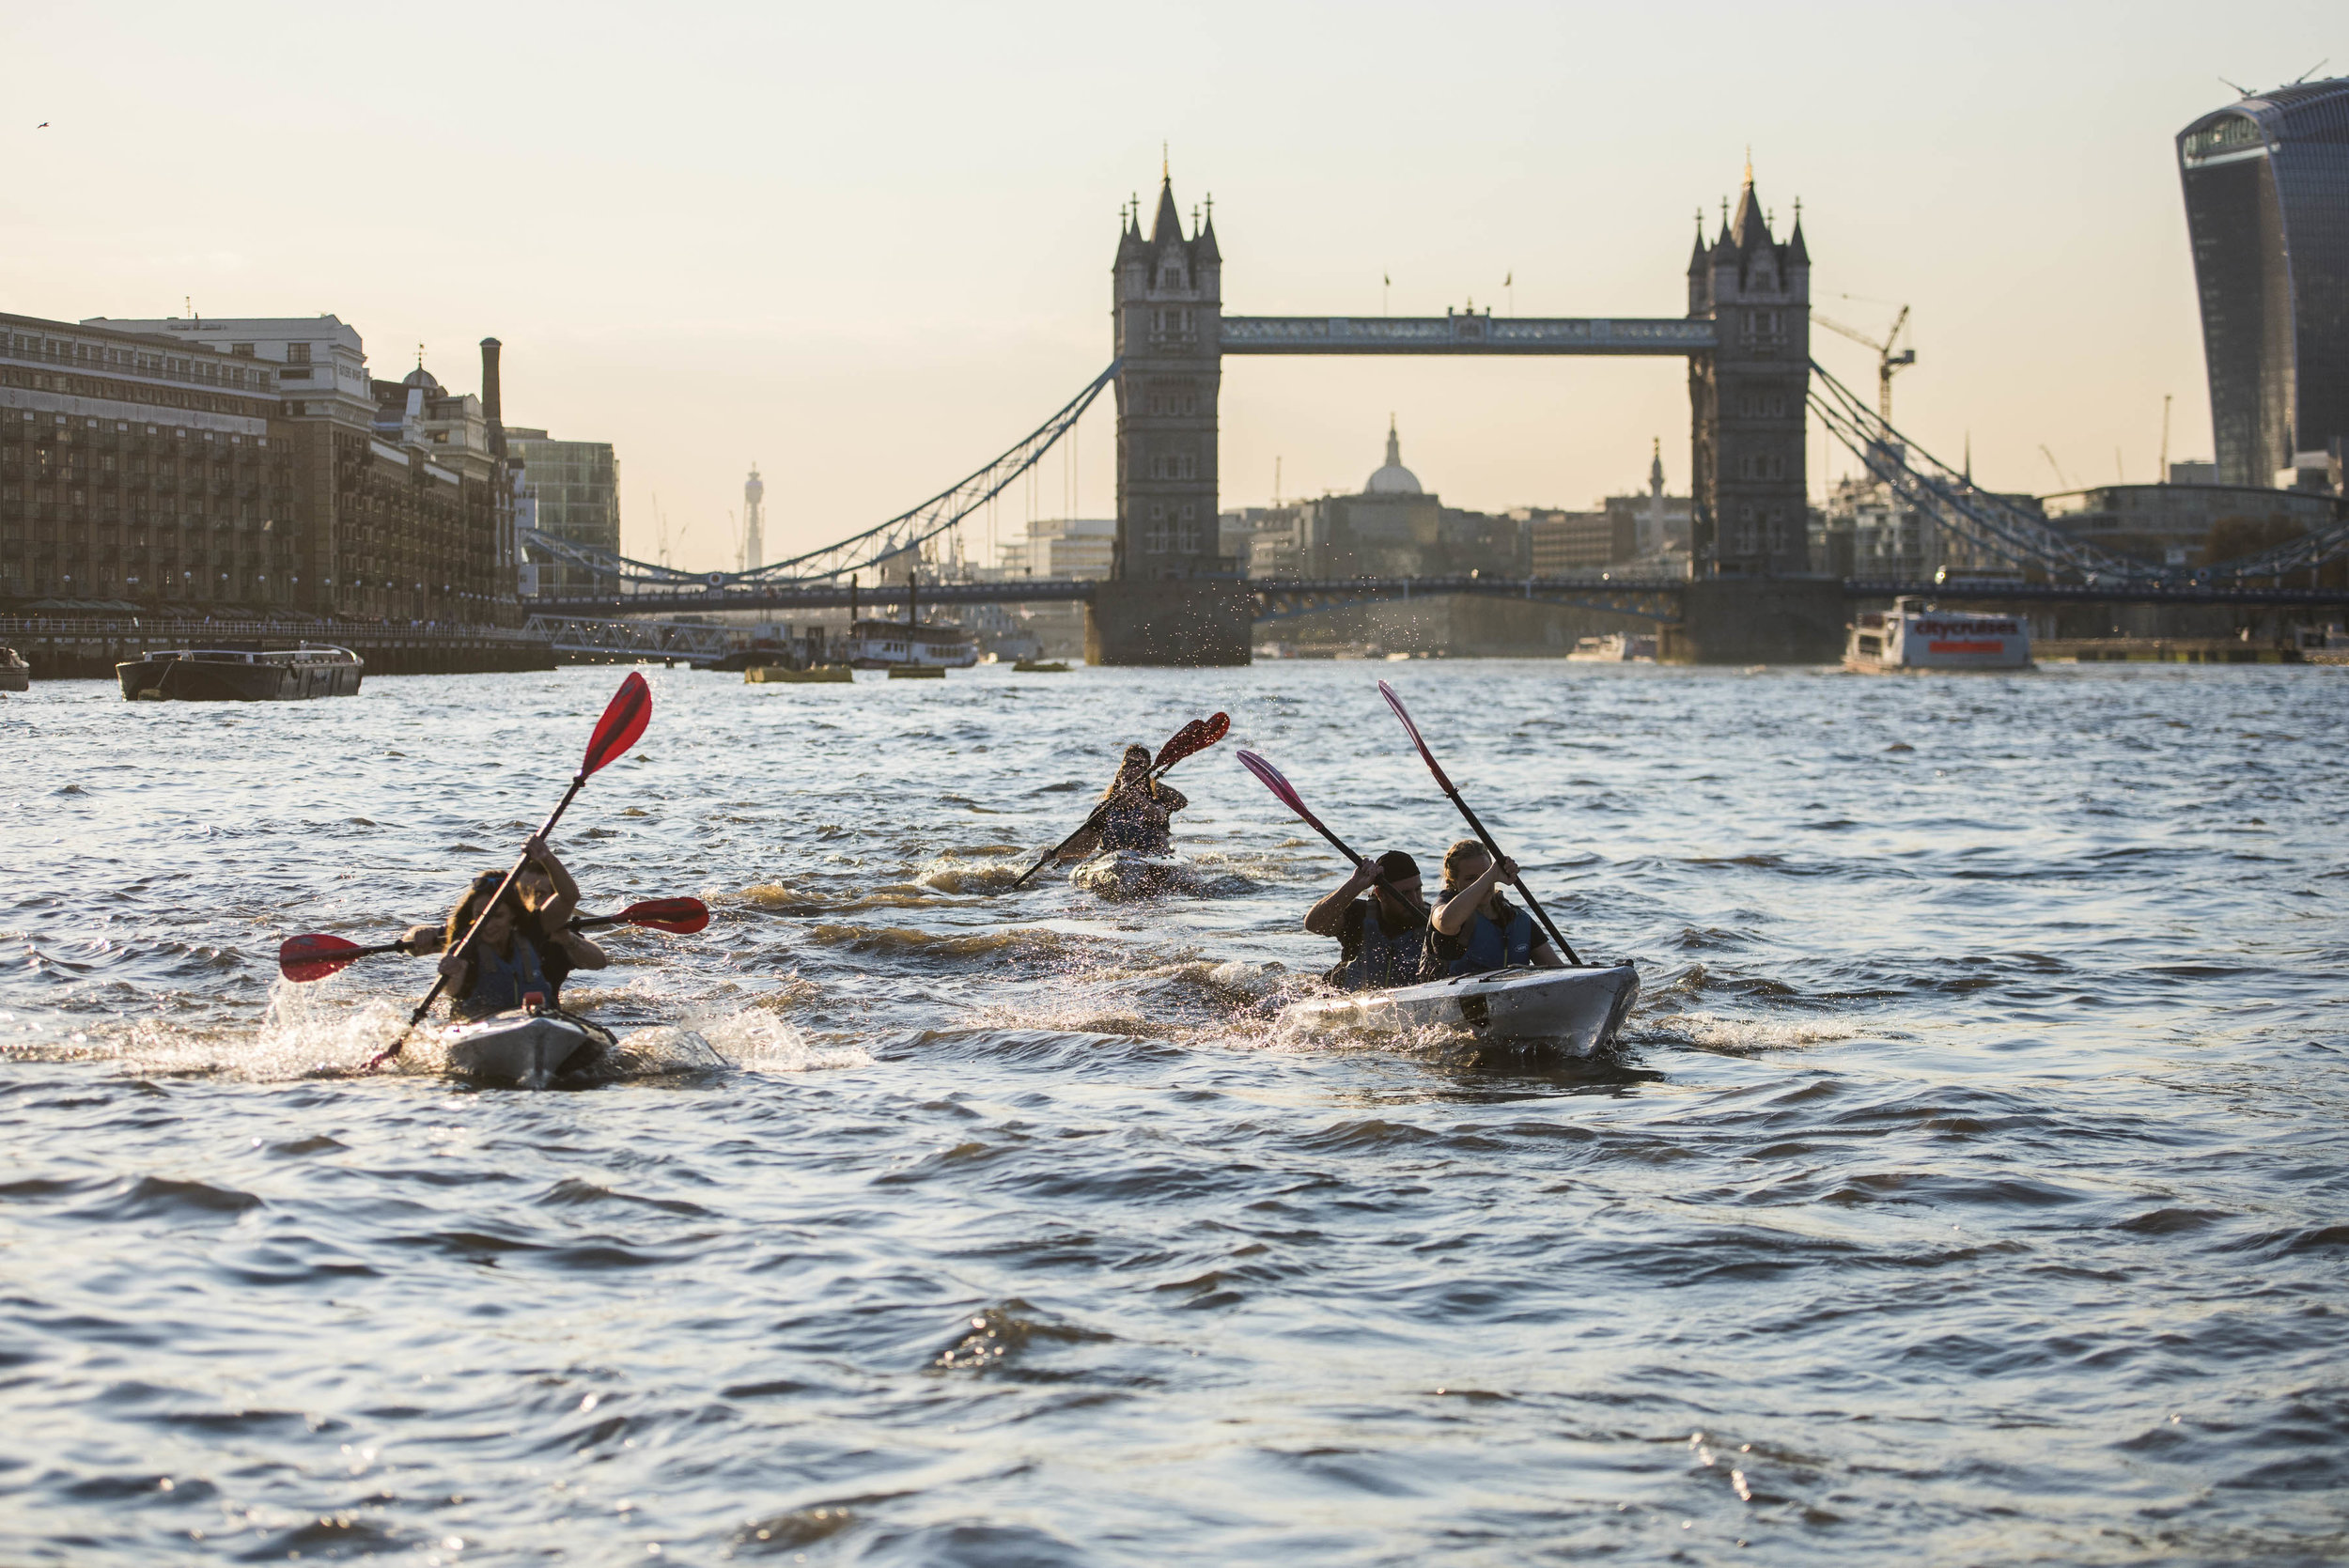 Talisker Whisky Challenge, kayaking London